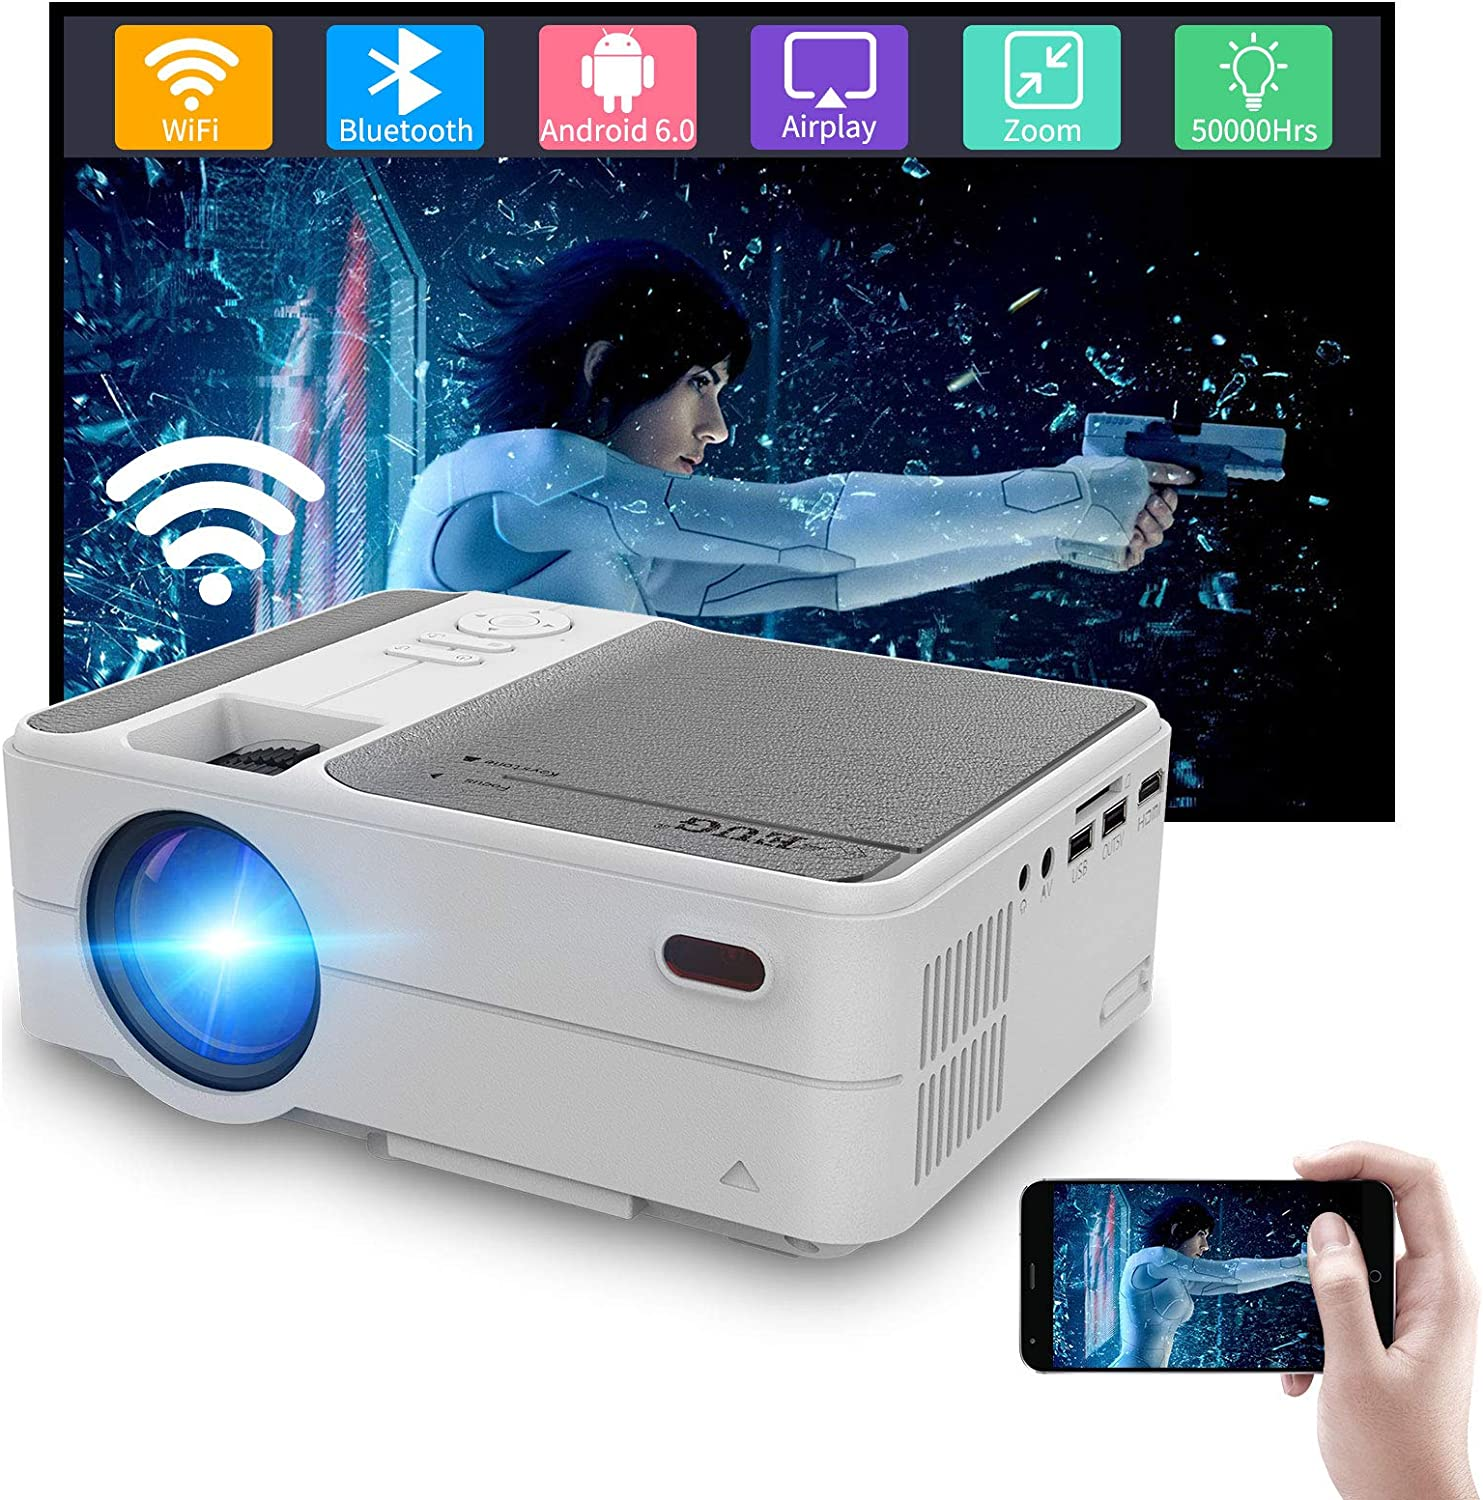 Wireless Mini Projector with Bluetooth YouTube 1080P Wireless Sync with iPhone, LED Portable Home Theater Projector for Movie Gaming, Built-in Speaker HDMI USB VGA Aux Audio